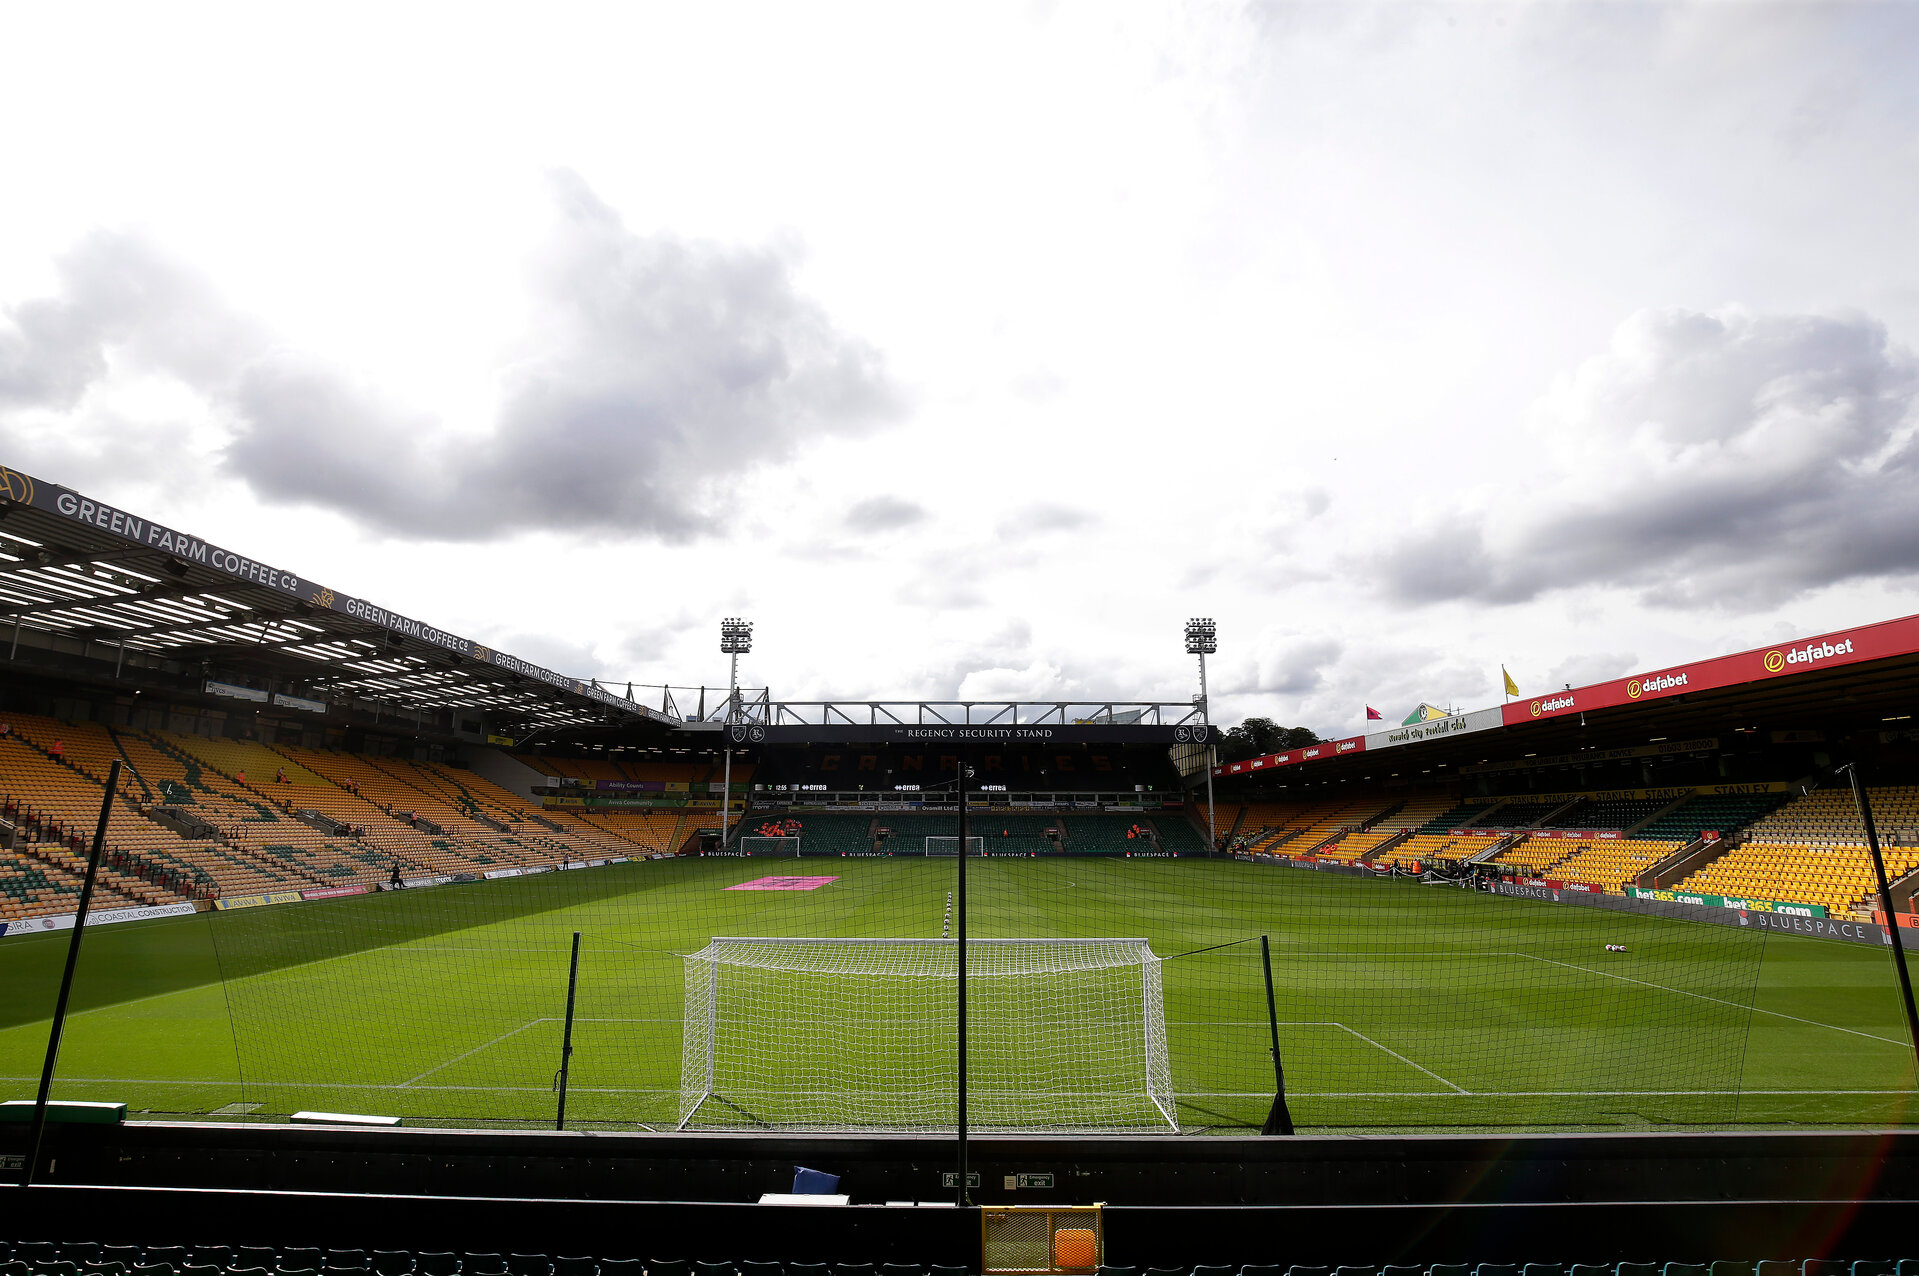 NORWICH, ENGLAND - OCTOBER 05: General view inside the stadium ahead of the Premier League match between Norwich City and Aston Villa at Carrow Road on October 05, 2019 in Norwich, United Kingdom. (Photo by Henry Browne/Getty Images)